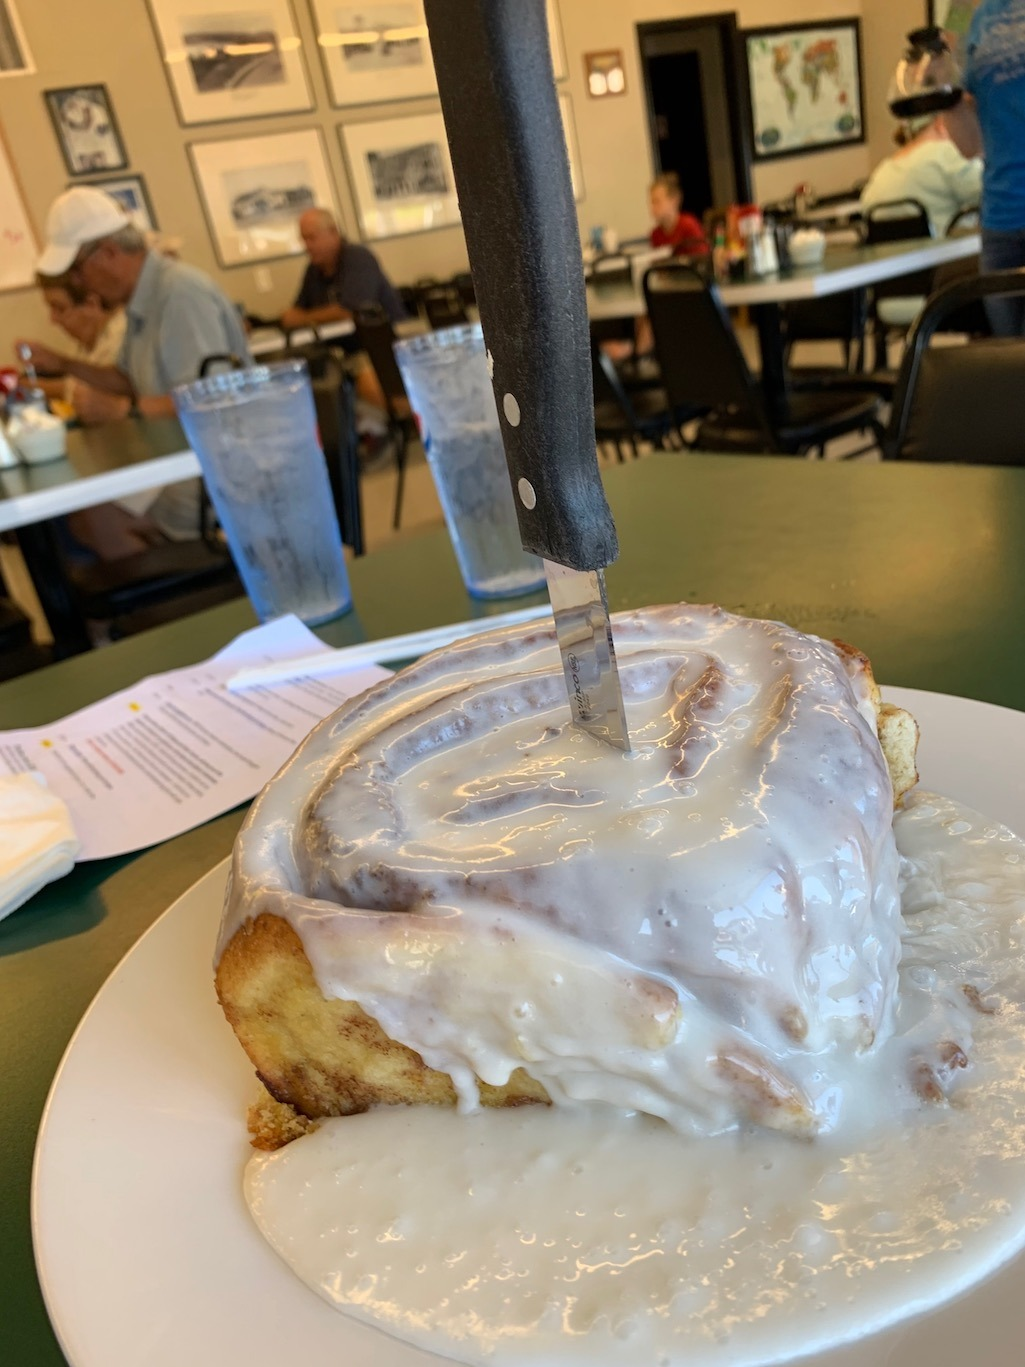 Stewarts Restaurant Lake of the Ozarks Super Giant Cinnamon Roll Central Missouri